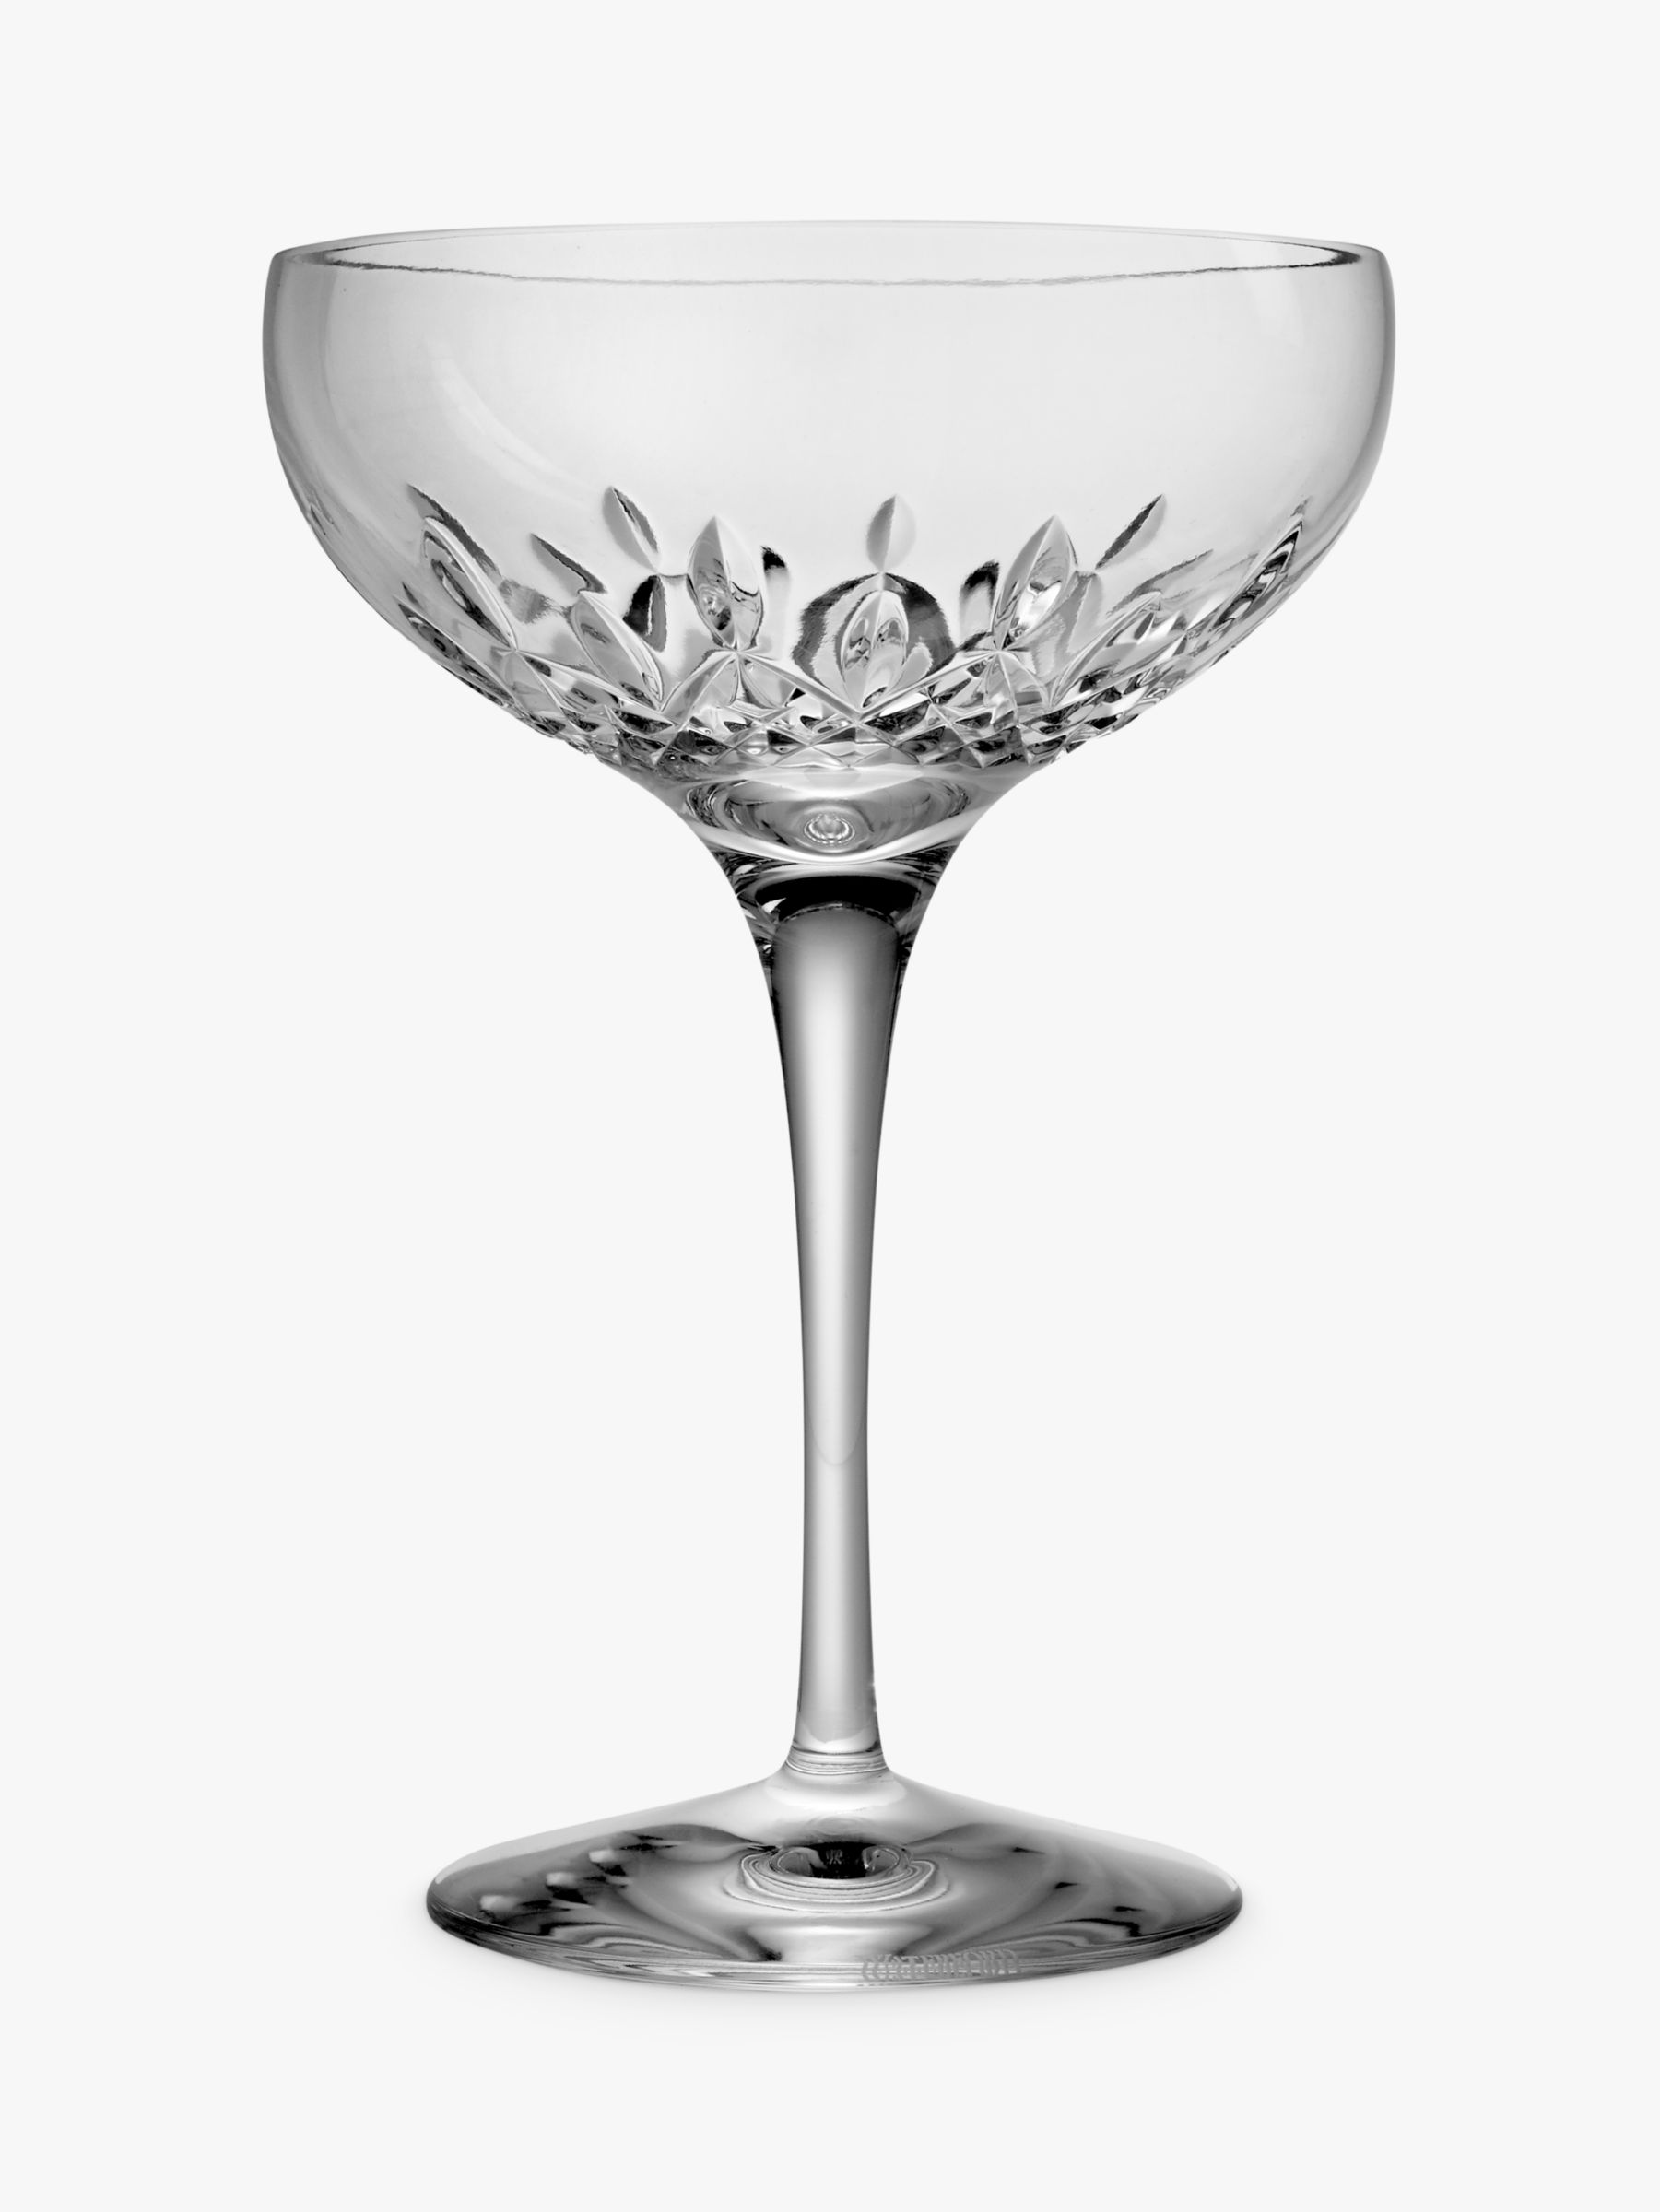 Waterford Crystal Lismore Essence Cut Lead Crystal Champagne Saucers Set Of 2 350ml At John Lewis Partners